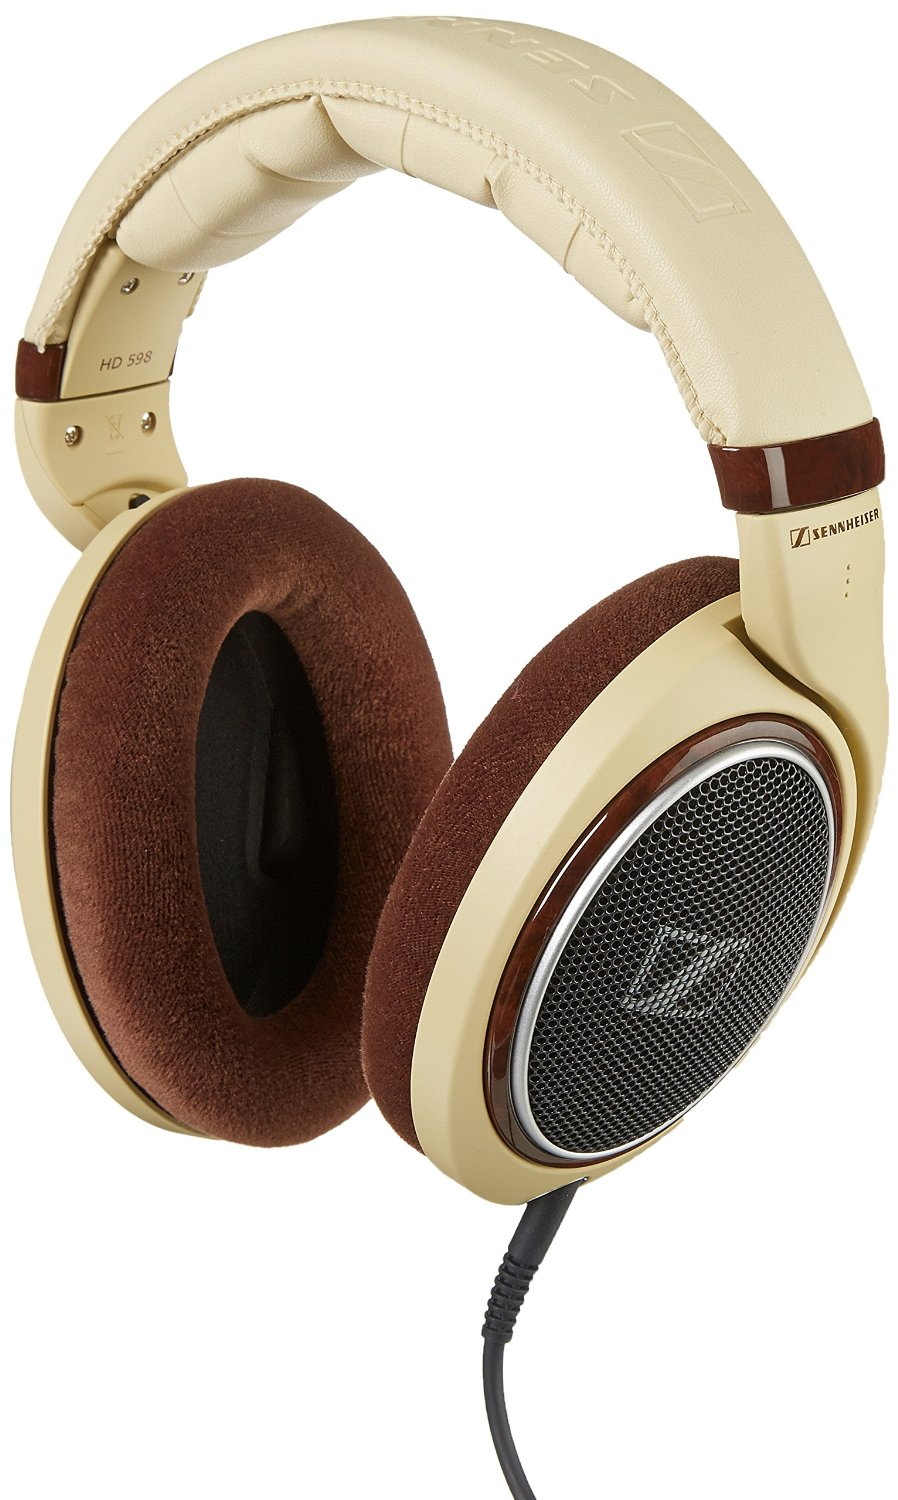 cool looking headphones